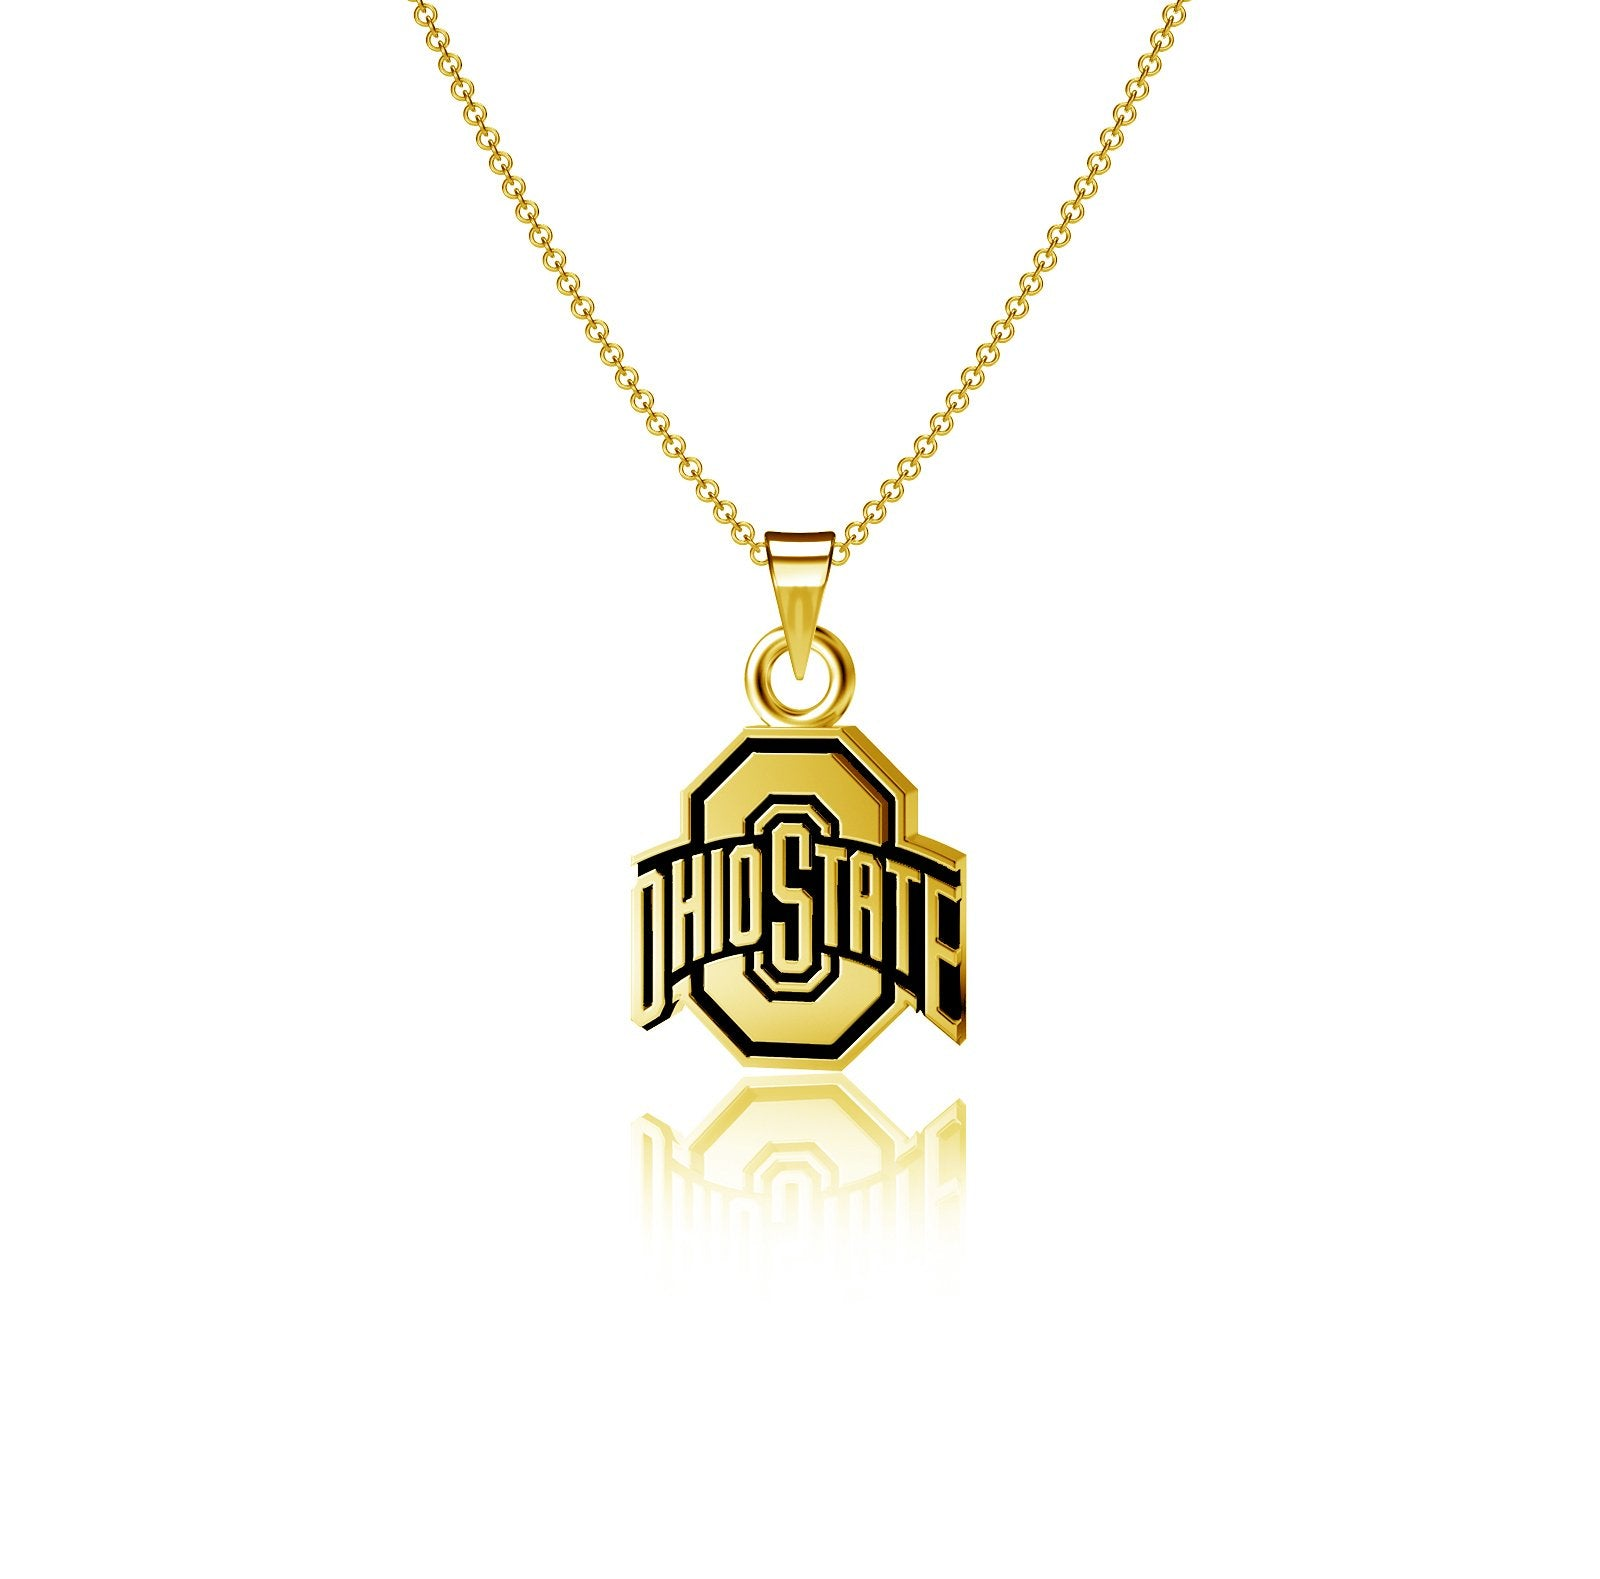 Ohio State University Pendant Necklace - Gold Plated